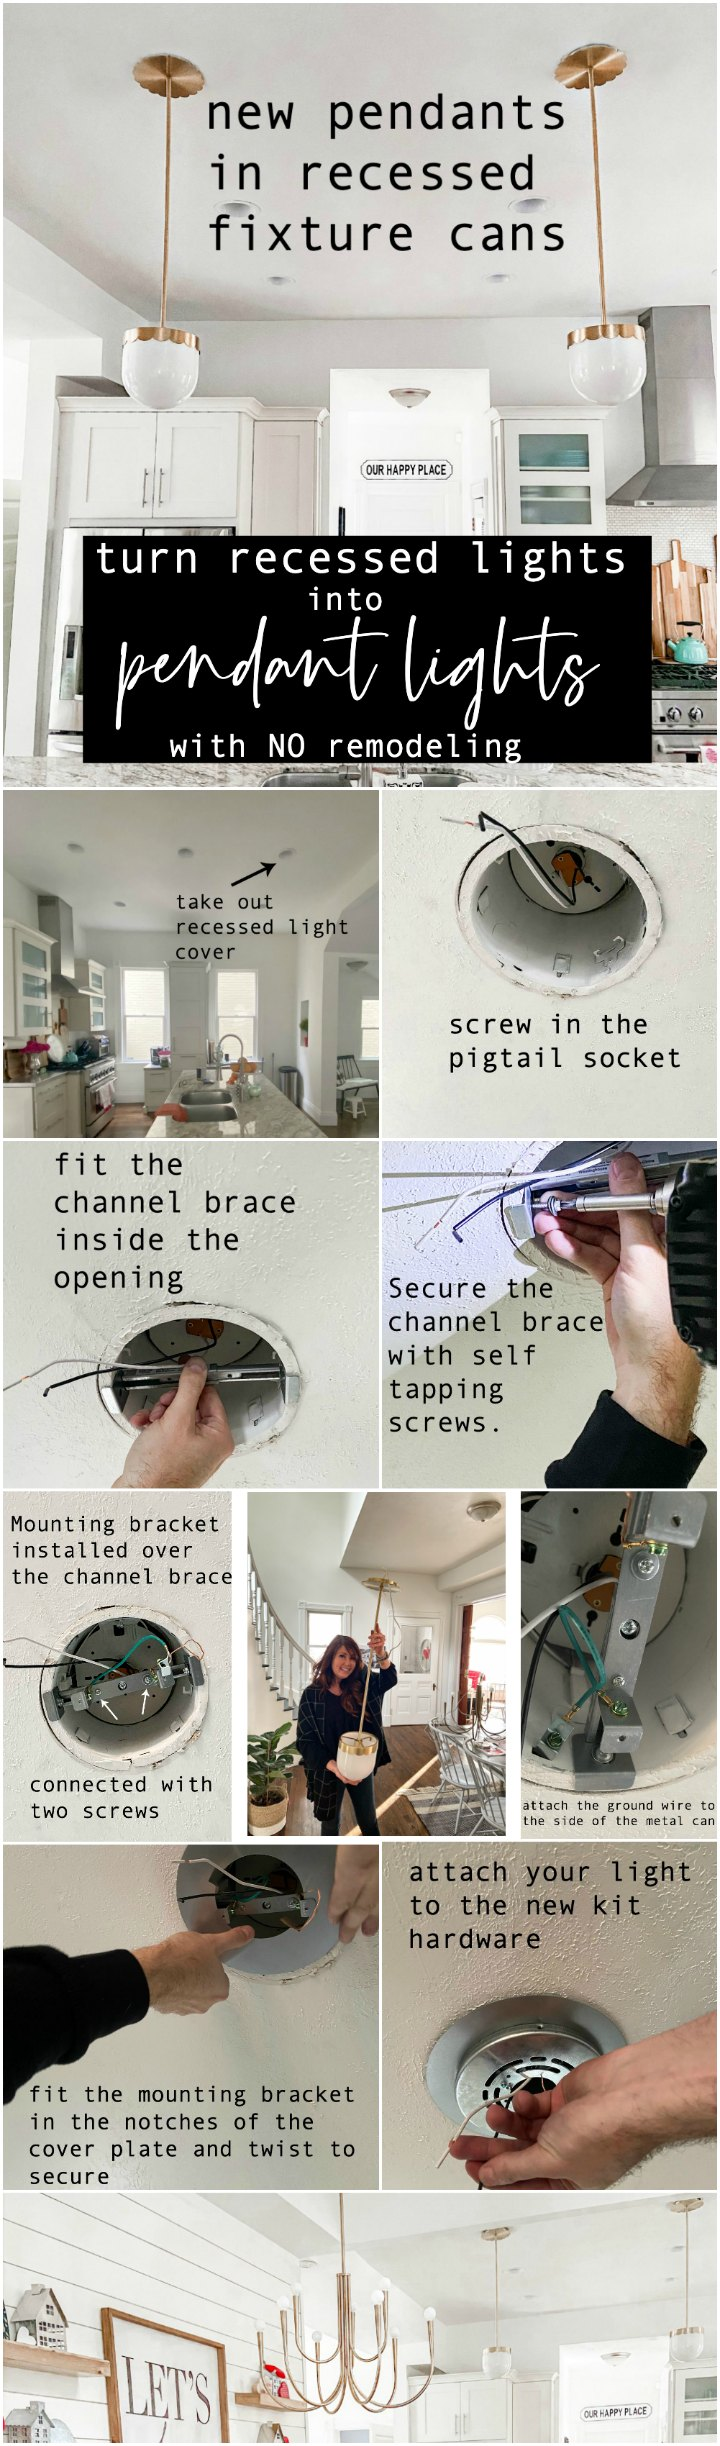 How To Change A Recessed Can Light To A Pendant Light No Remodeling